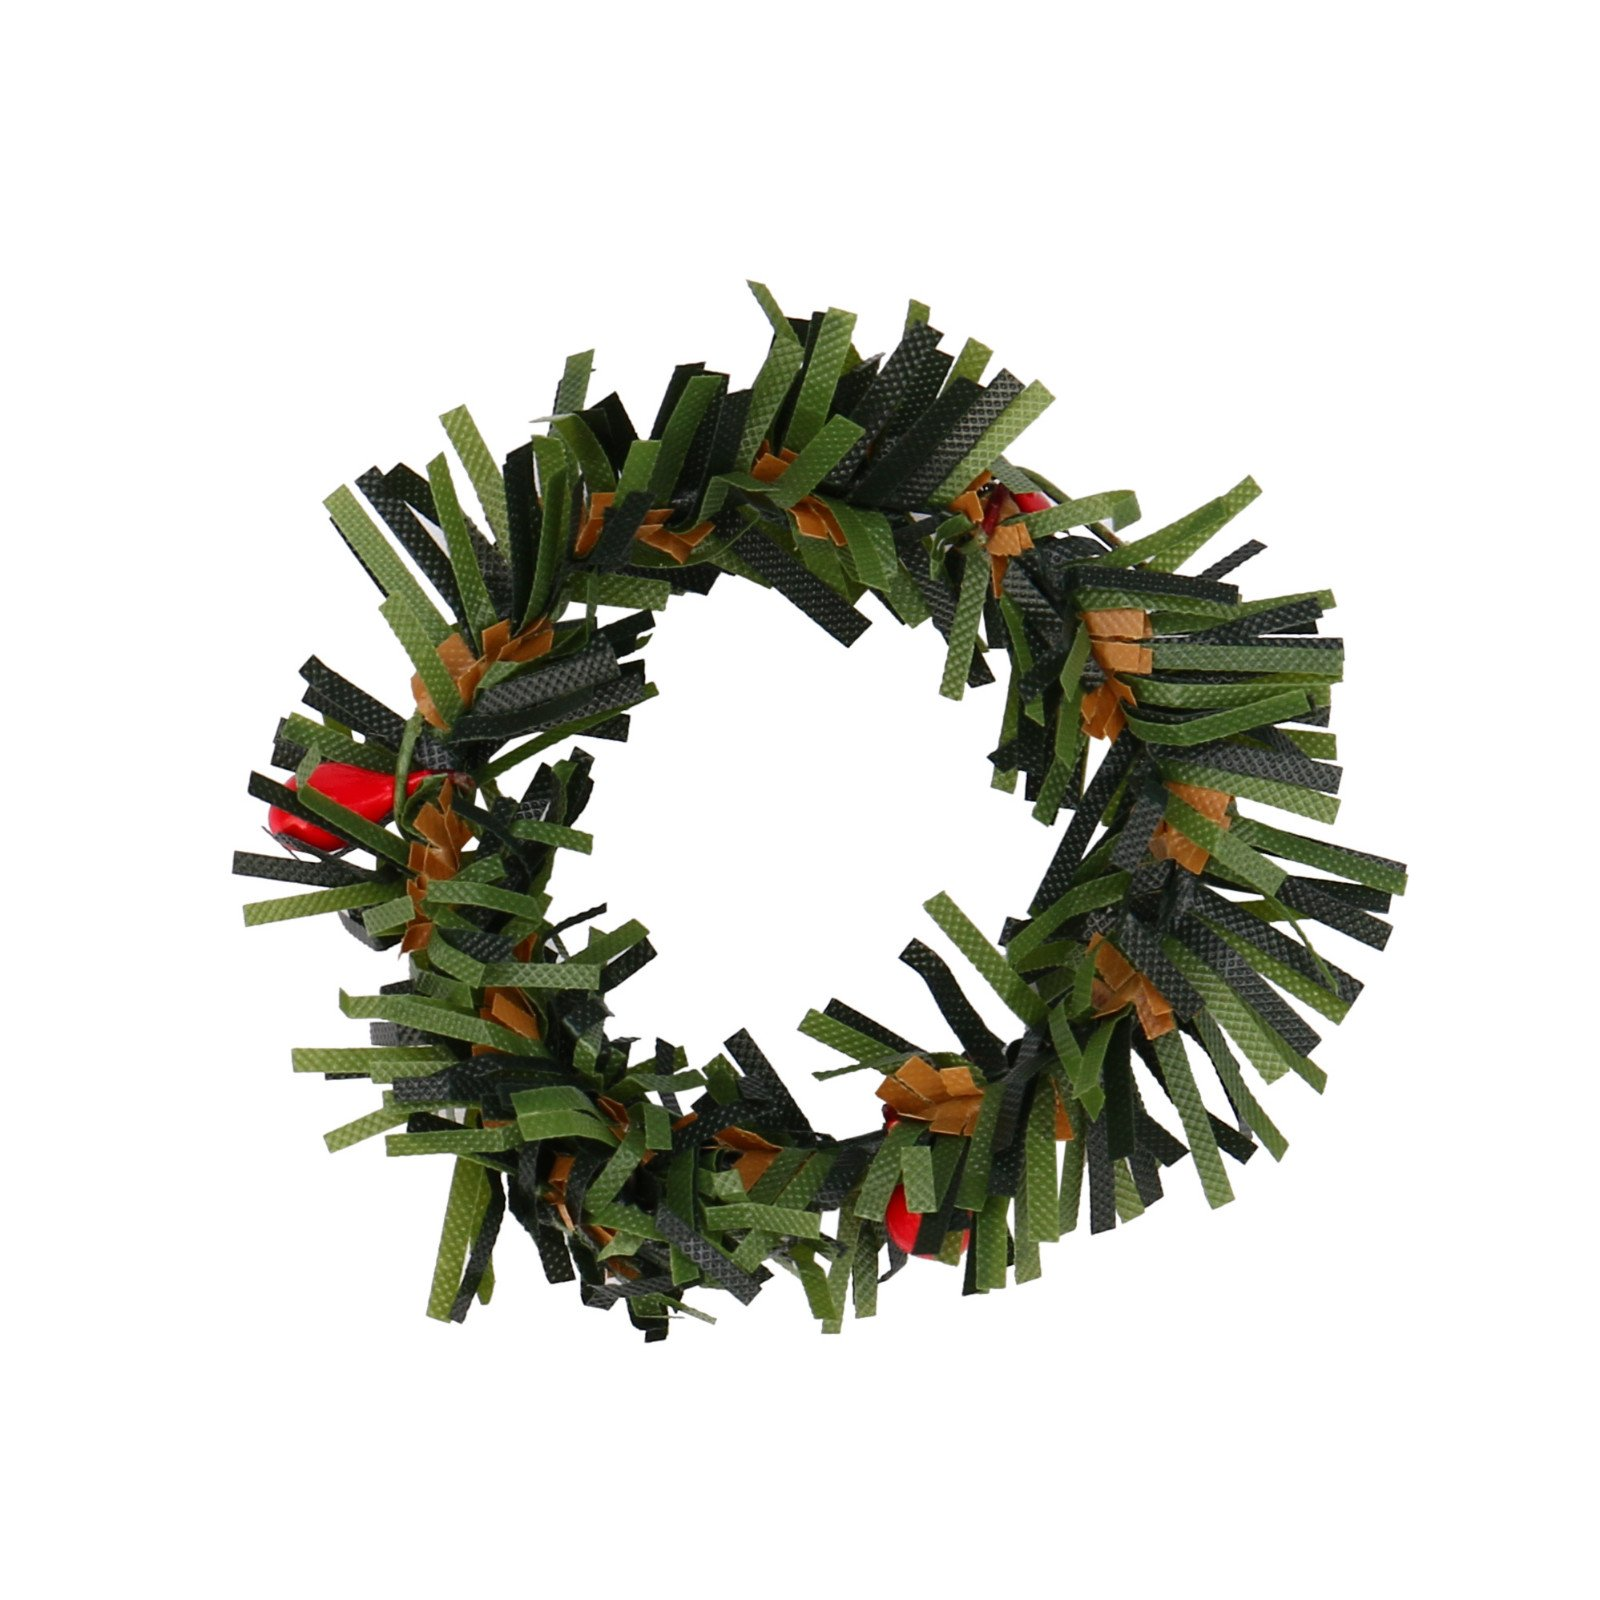 Convinced Halloween Decorations Indoor, Home Décor,Christmas Large Wreath Door Wall Ornament Garland Decoration Red Bowknot